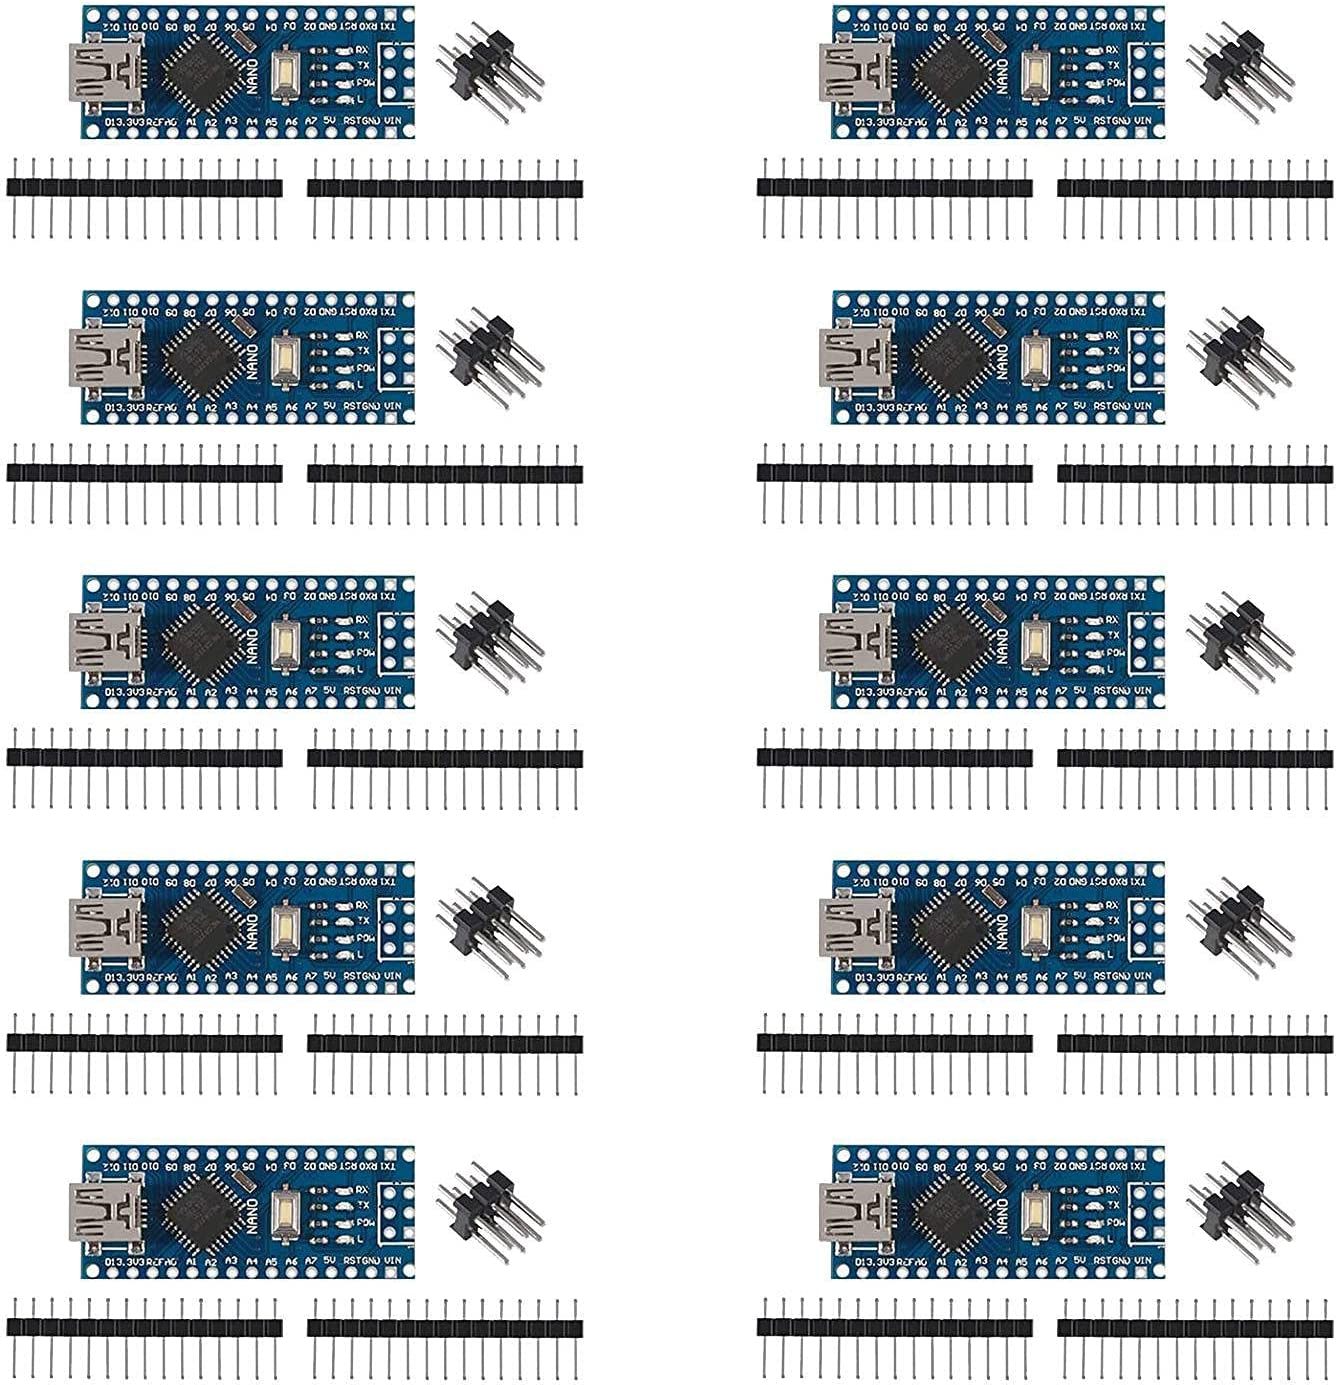 SODIAL 10PCS for ATmega328P 5V Module Ranking TOP10 Board Controller -Type 16M Max 87% OFF